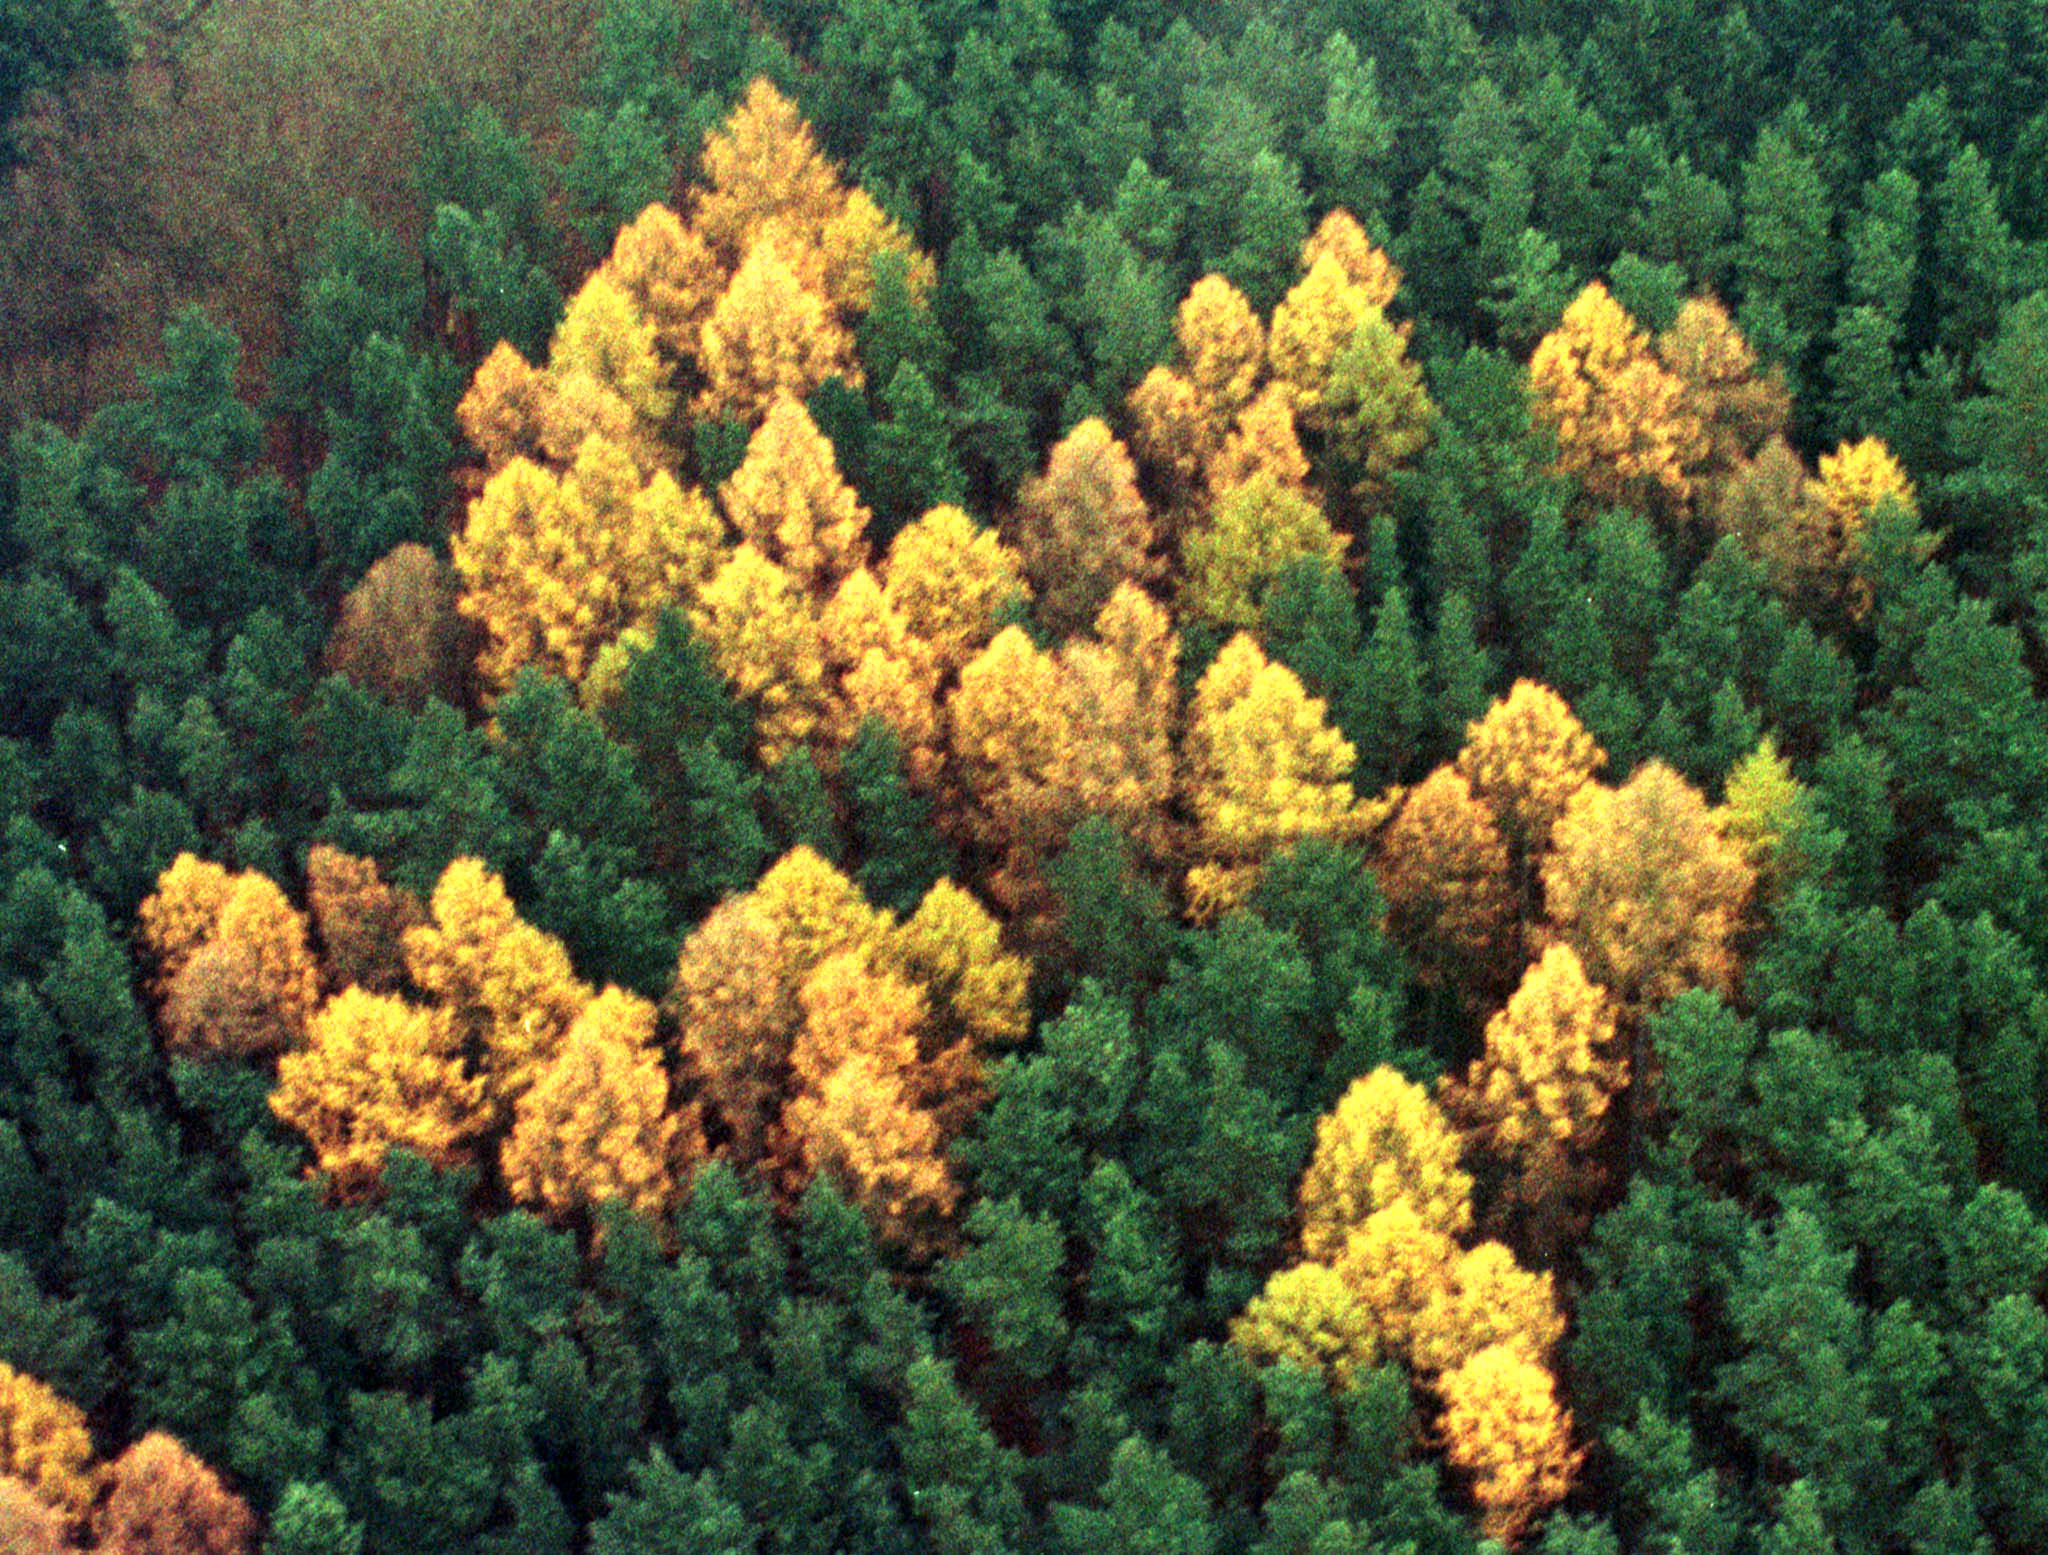 An aerial view shows a giant 60-by-60 metre swastika symbol consisting of larch trees amid a green p..